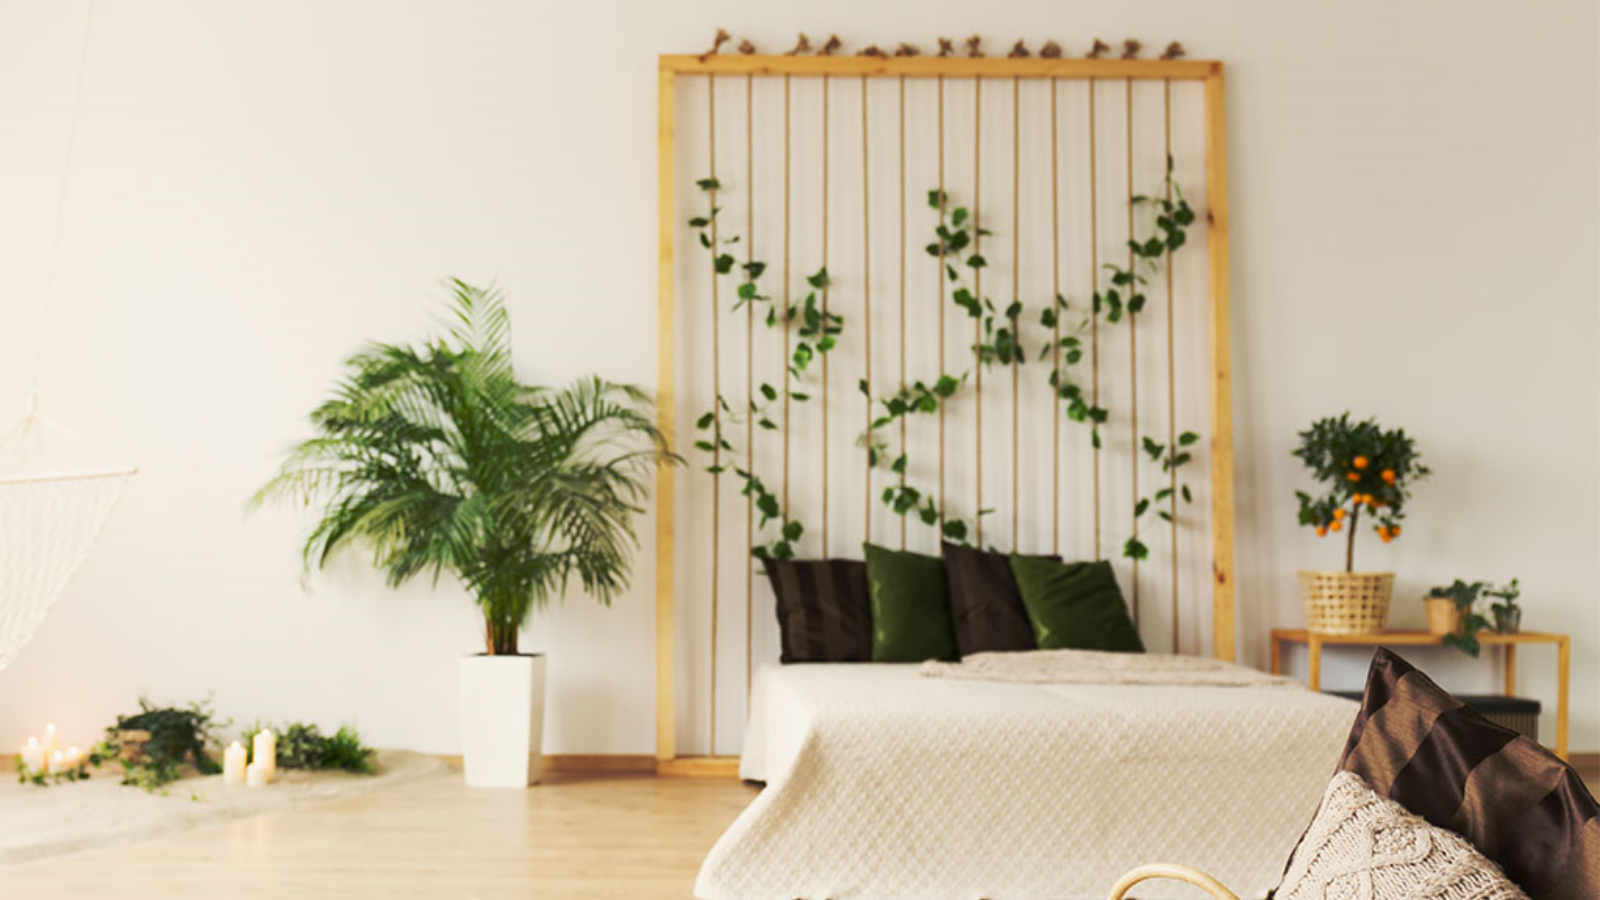 Sustainability Simplified – Can Your Home Décor Turn Green?